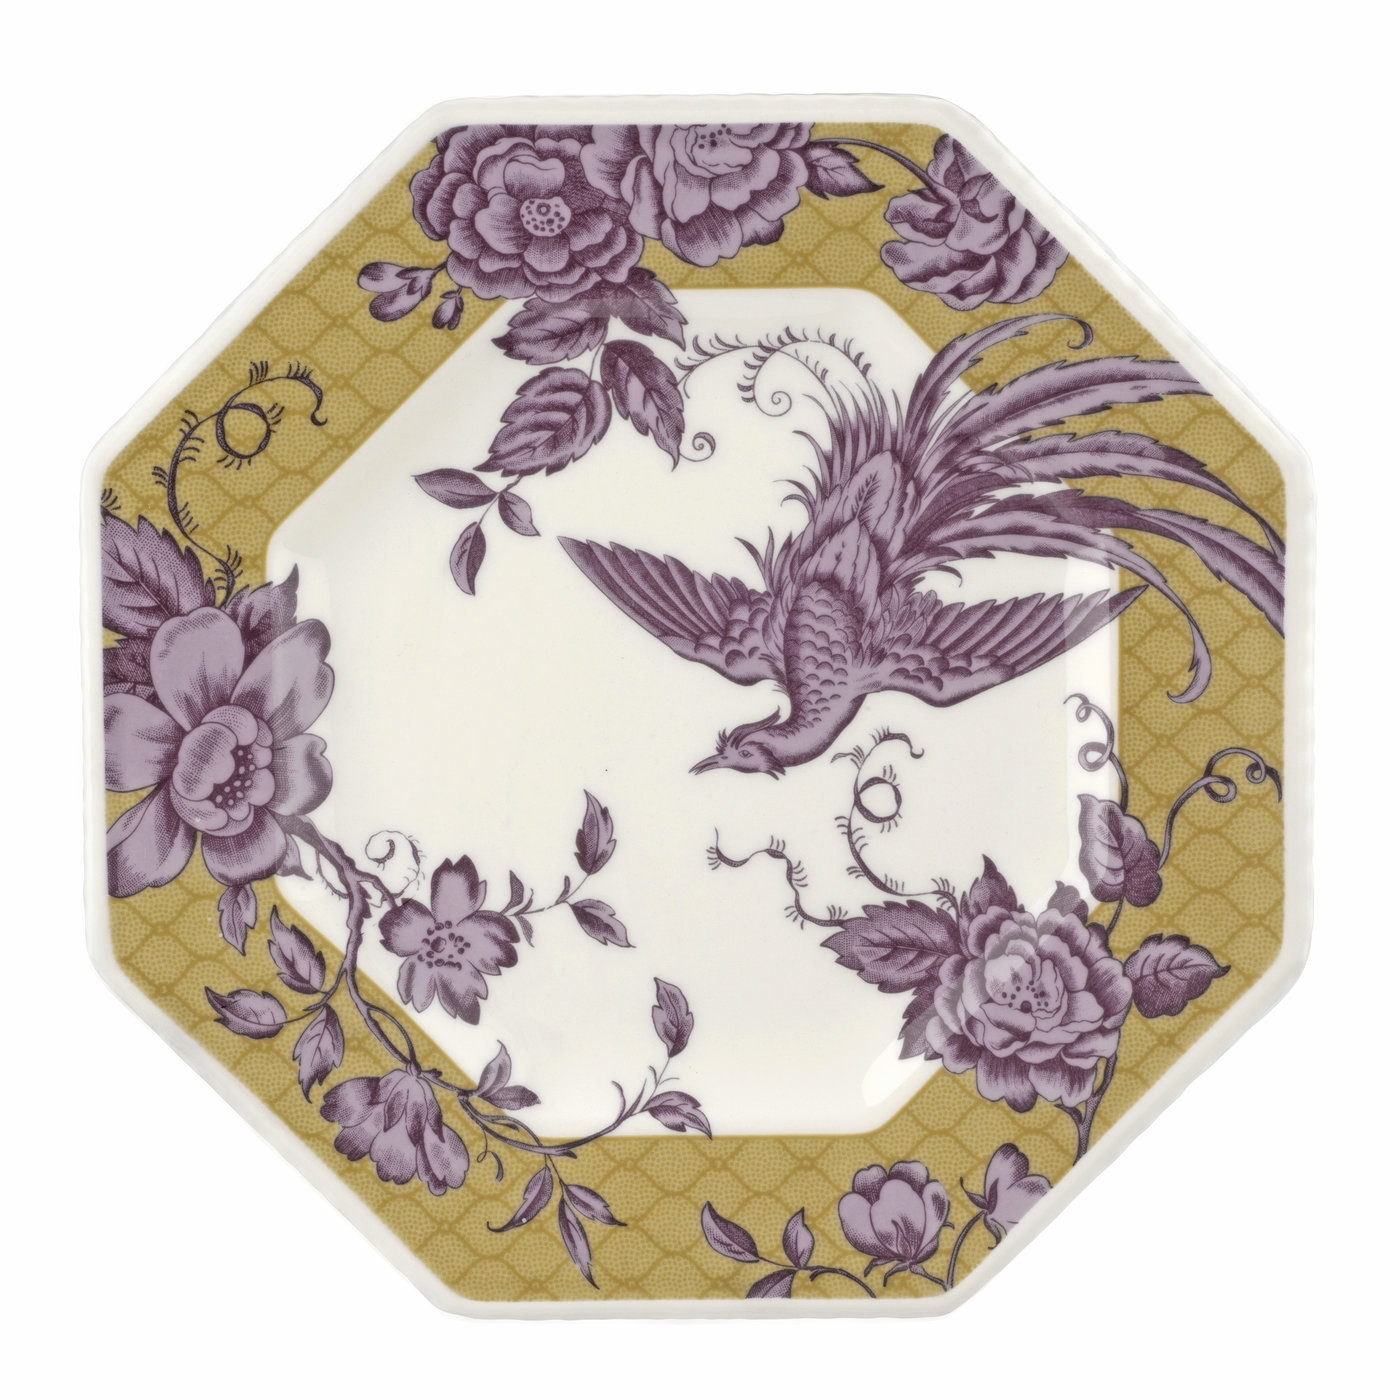 Spode Kingsley Ochre 9.5 Inch Octagonal Plate image number 0